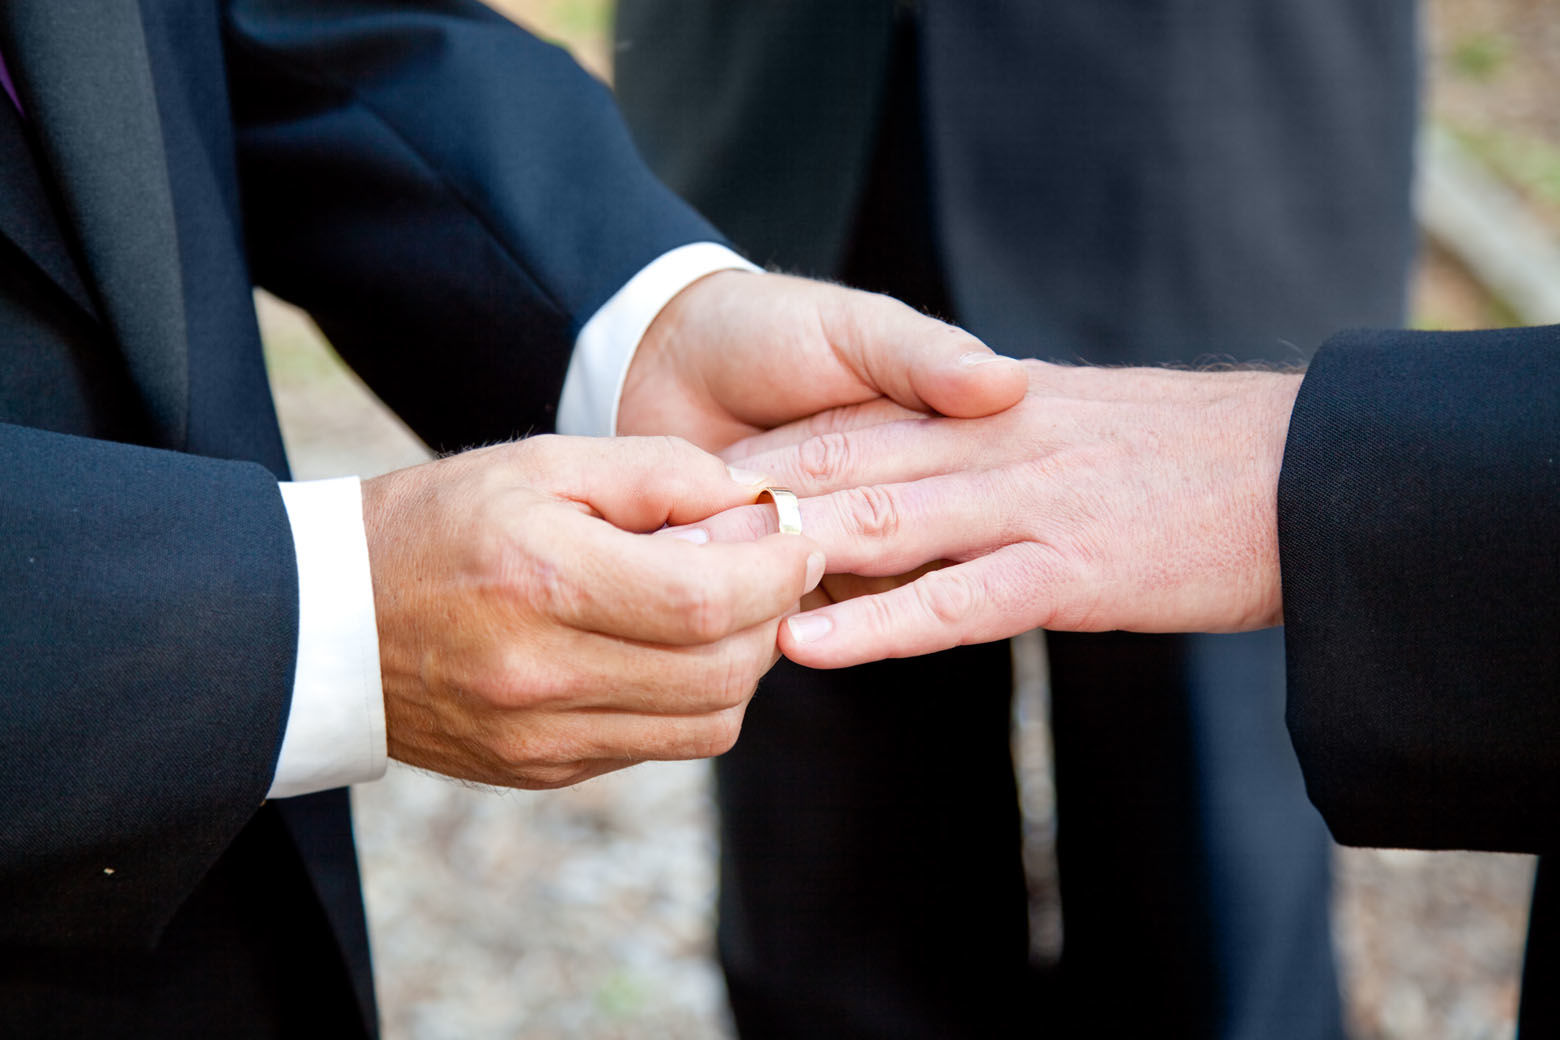 Gay and getting married? Financial advantages (and